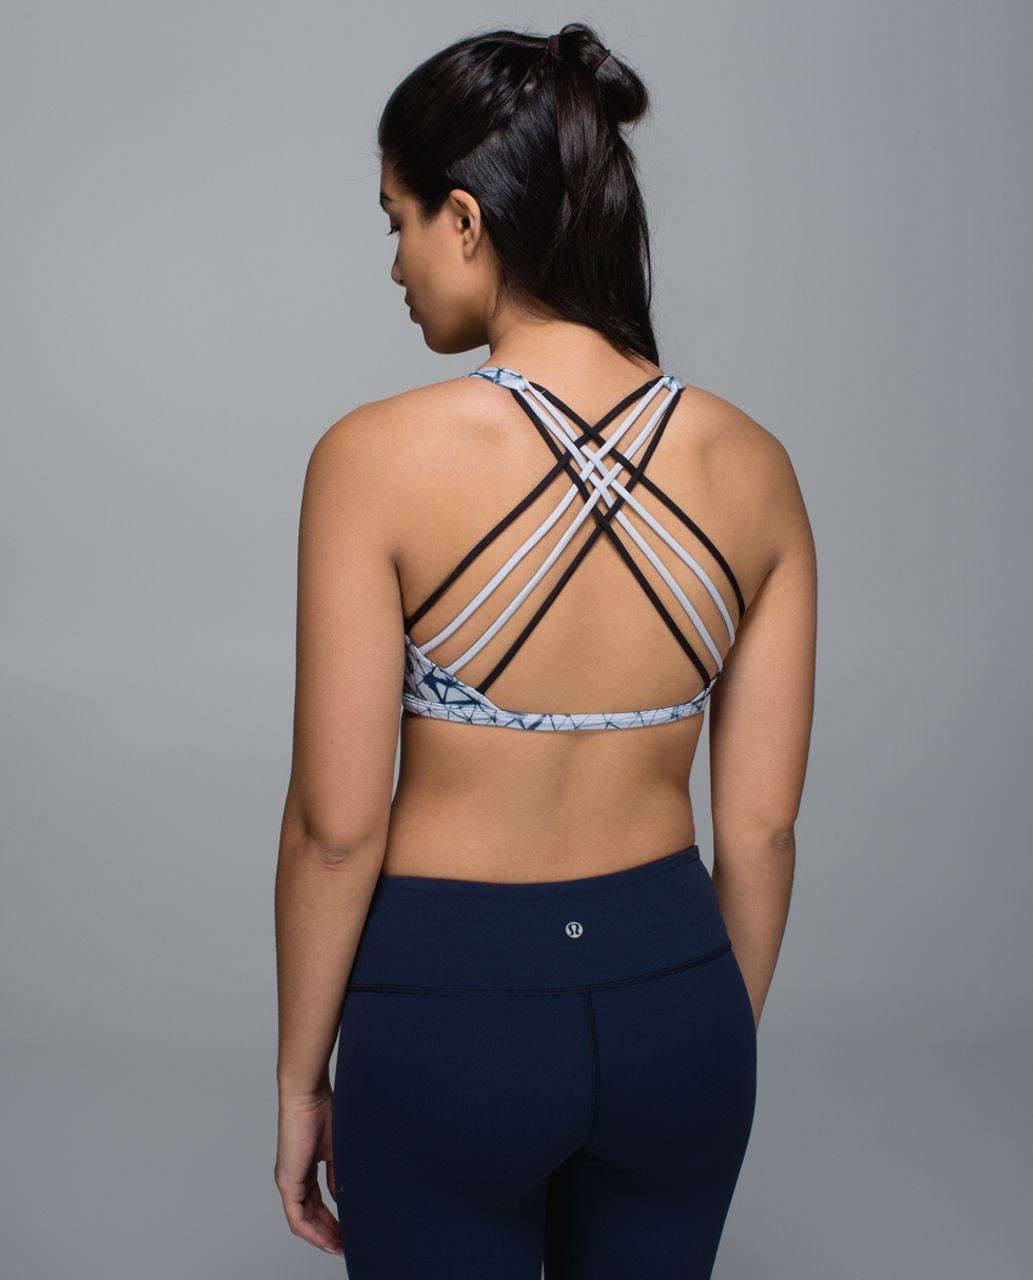 Lululemon Free To Be Bra (Wild) - Star Crushed Silver Fox Deep Navy / Black / Silver Fox